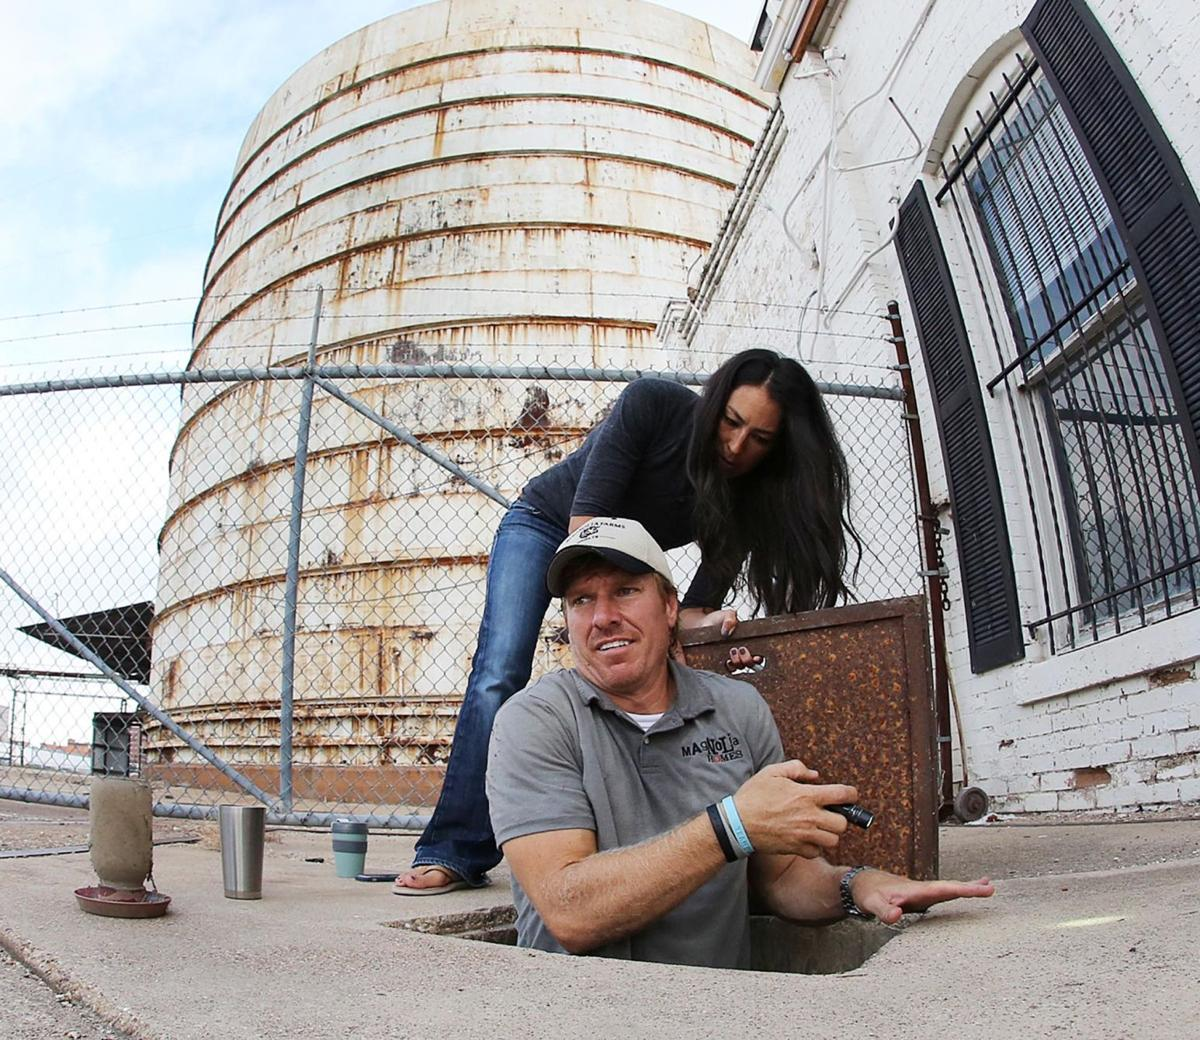 chip and joanna gaines show the culture wars aren 39 t fought in d c but on tv opinion. Black Bedroom Furniture Sets. Home Design Ideas